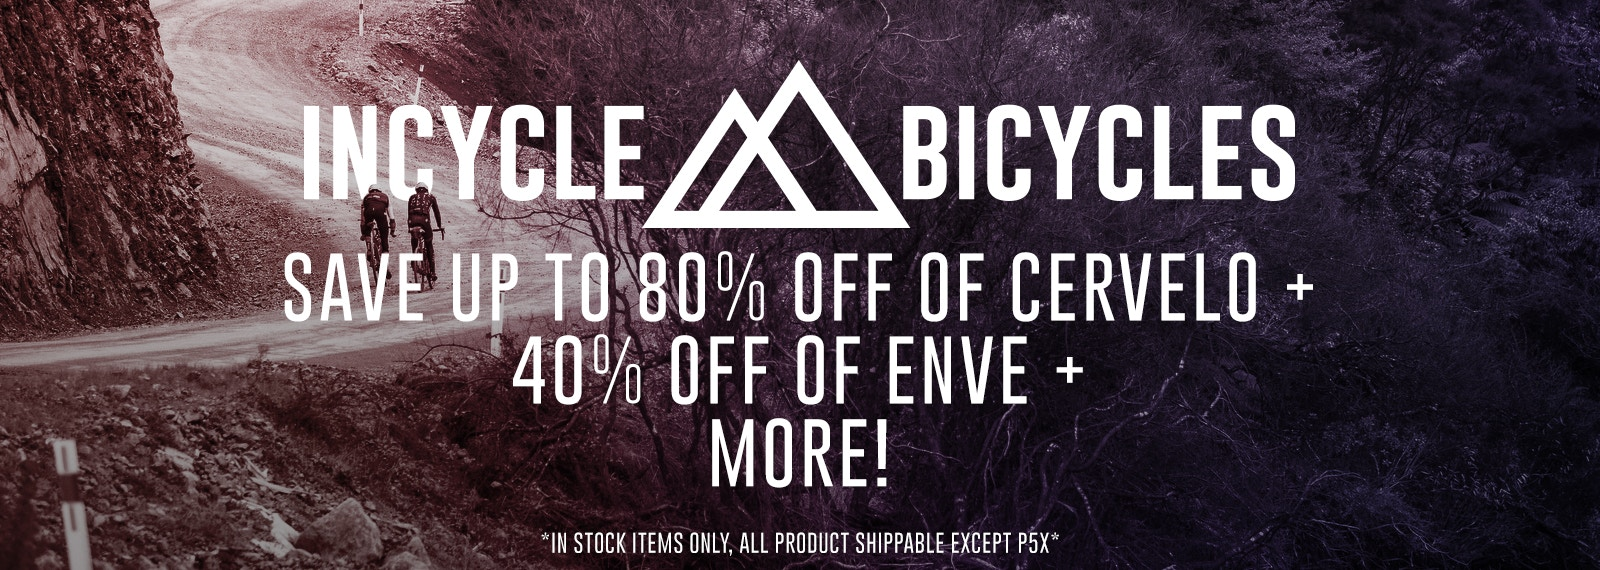 Cross everything off your Christmas list! Xmas sale at InCycle Bicycles! Save up to 80% off Cervelo Bikes, 40% off Enve Wheels, and more! Sale applies to in-stock items only.